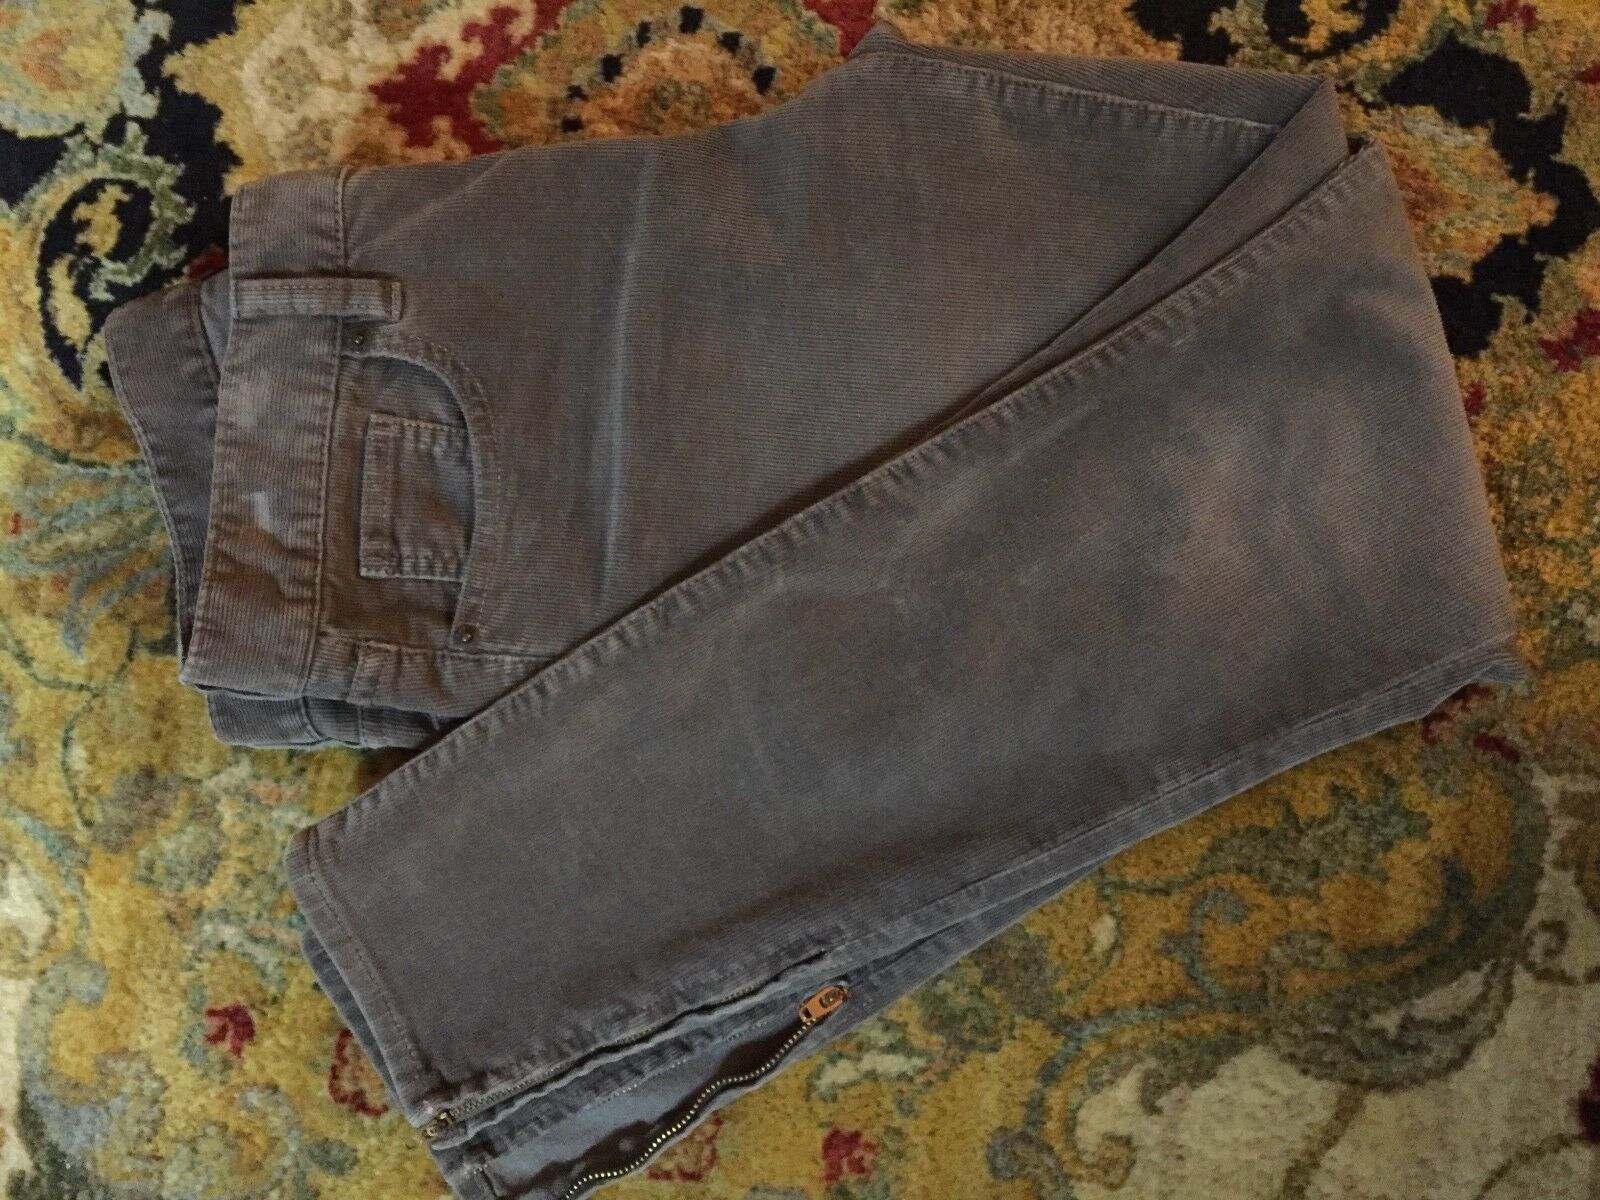 Taupe Skinny Jeans Cords Ankle Zip J. Crew Pants Stretch Corduroy